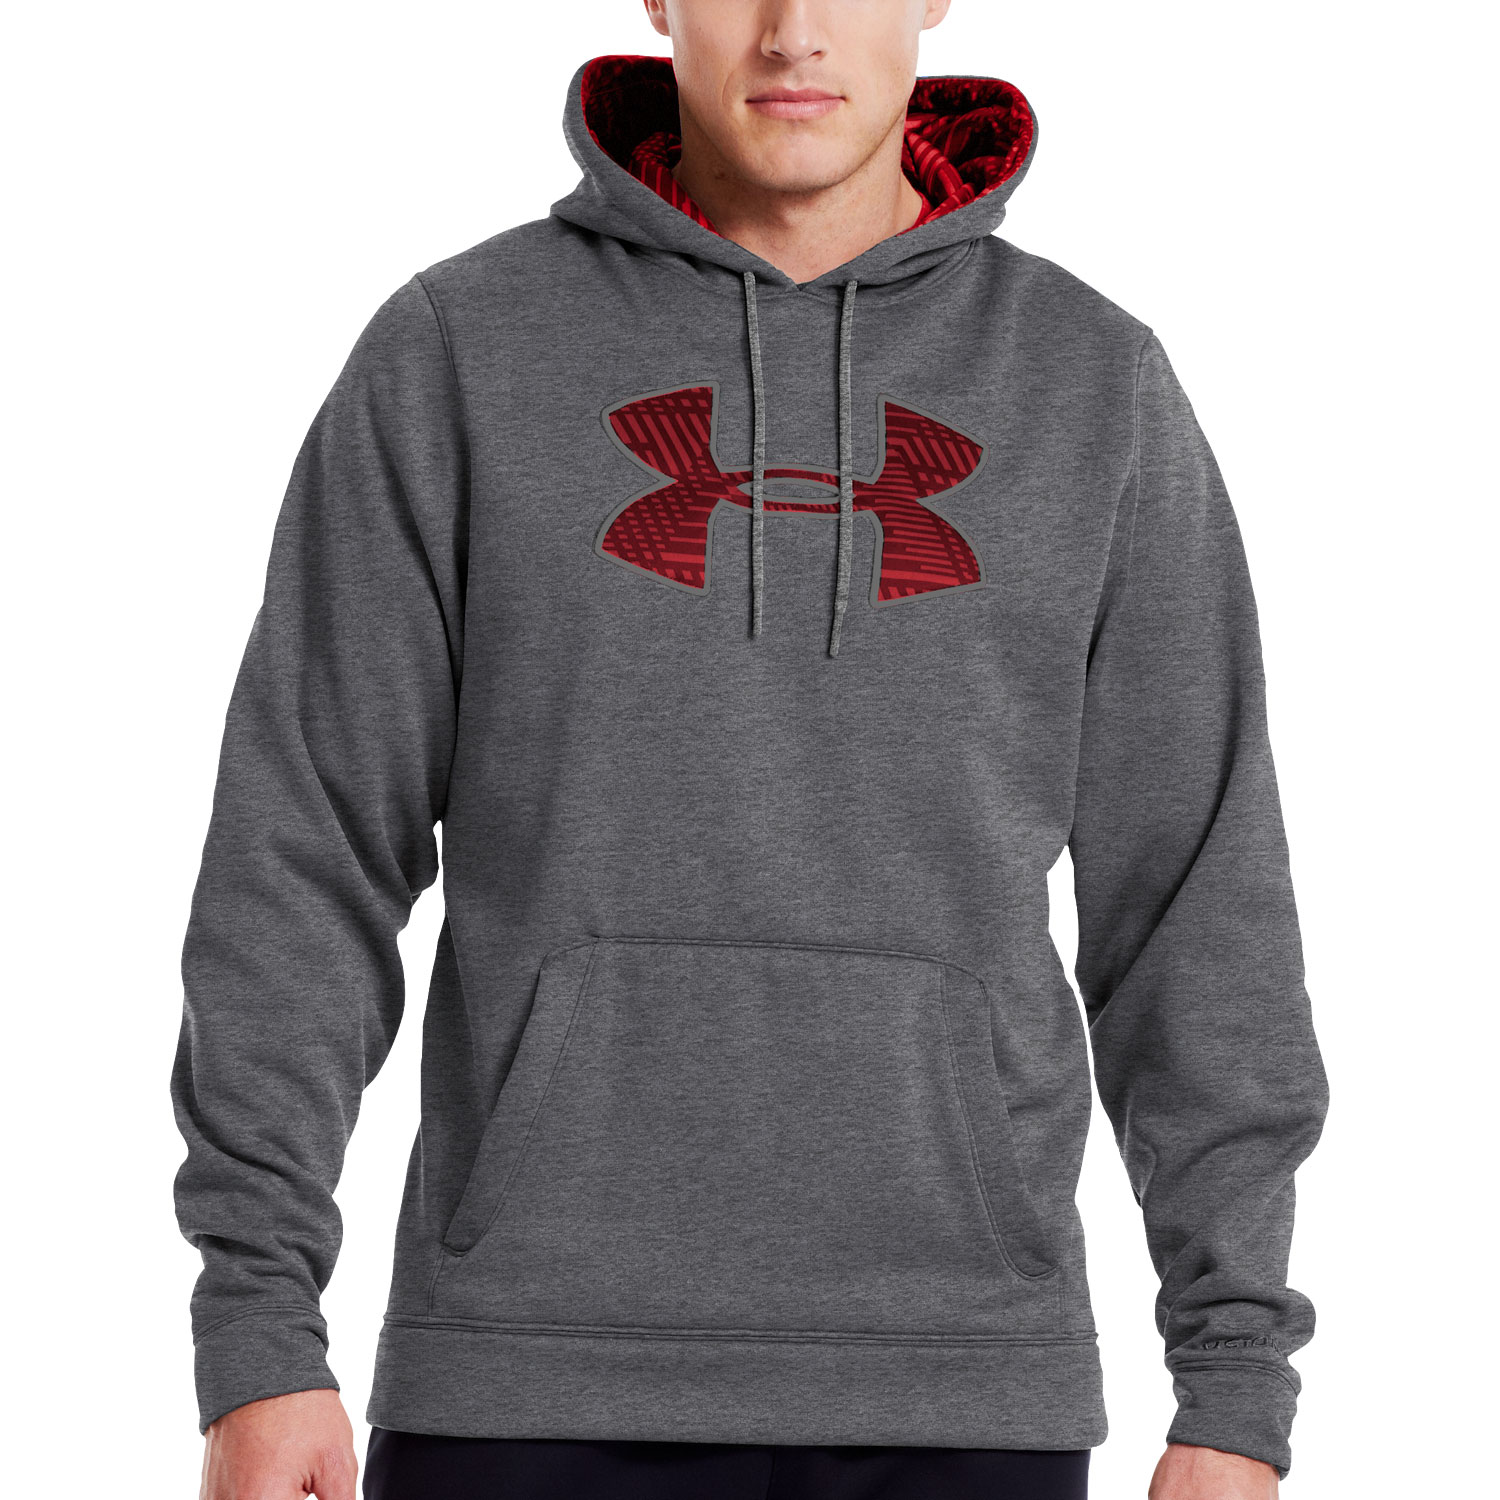 Under Armour Storm Sweatshirts Fitness Under Armour Storm